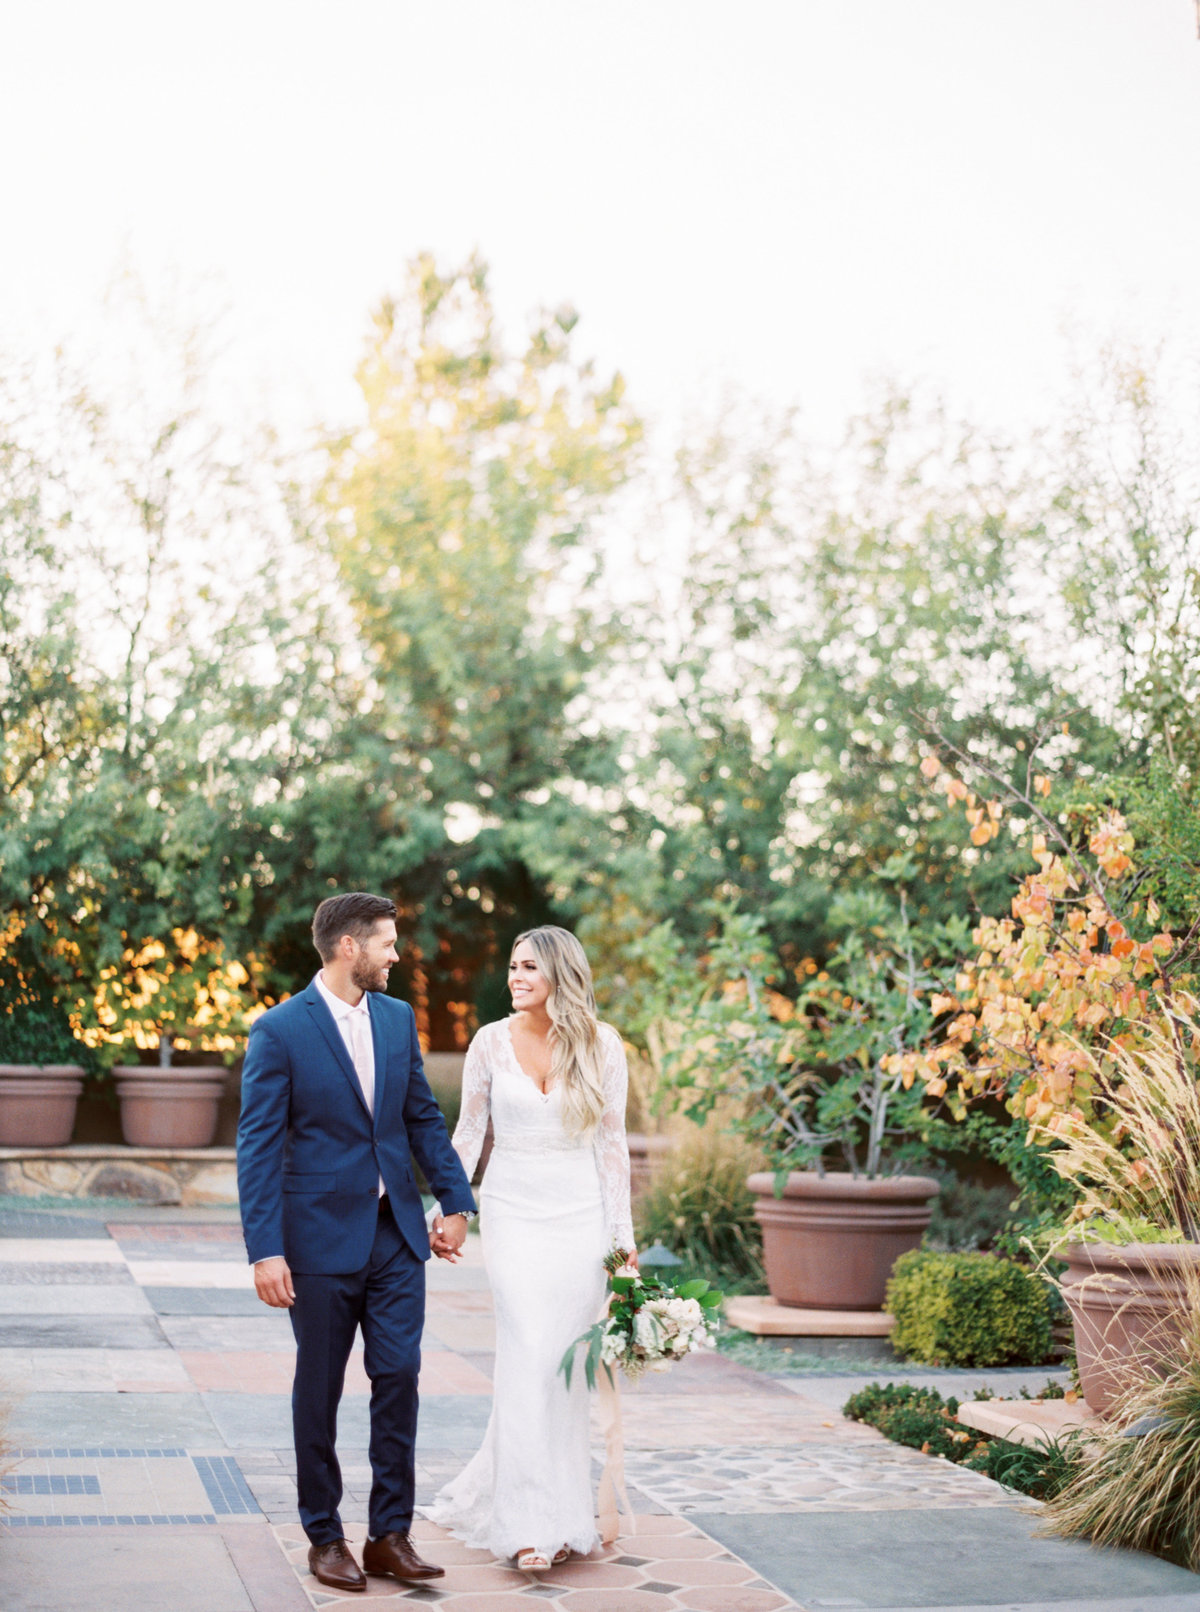 Las Vegas Wedding - Mary Claire Photography-10